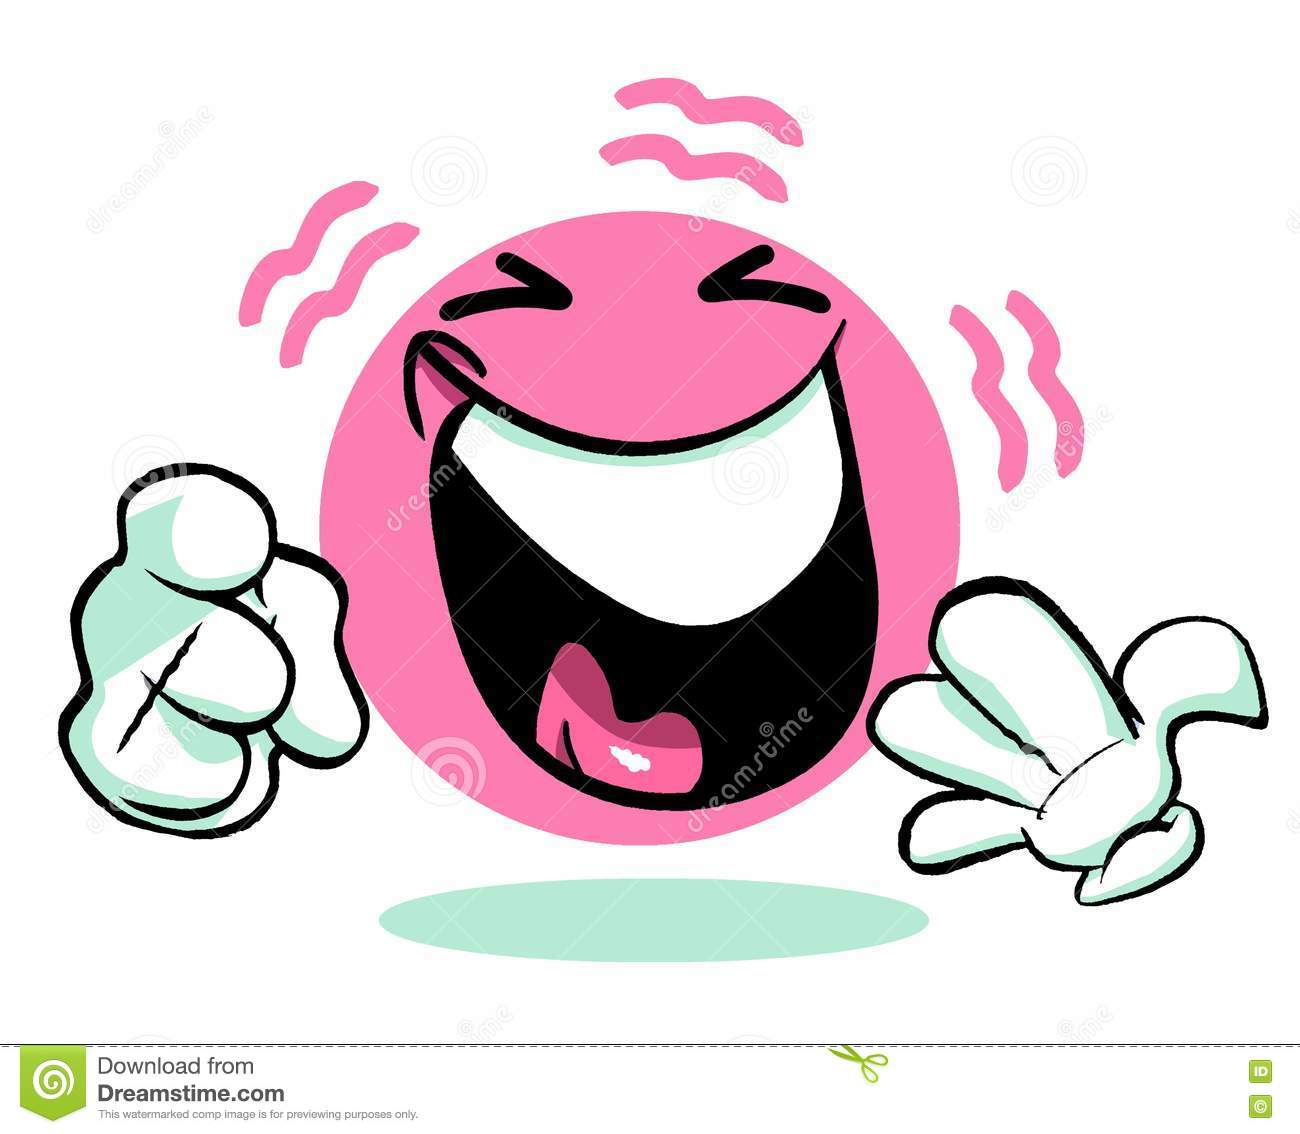 laughing pink cartoon emoticon emoji stock photo image of joyful rh dreamstime com Person Laughing Clip Art Eyes Looking Clip Art